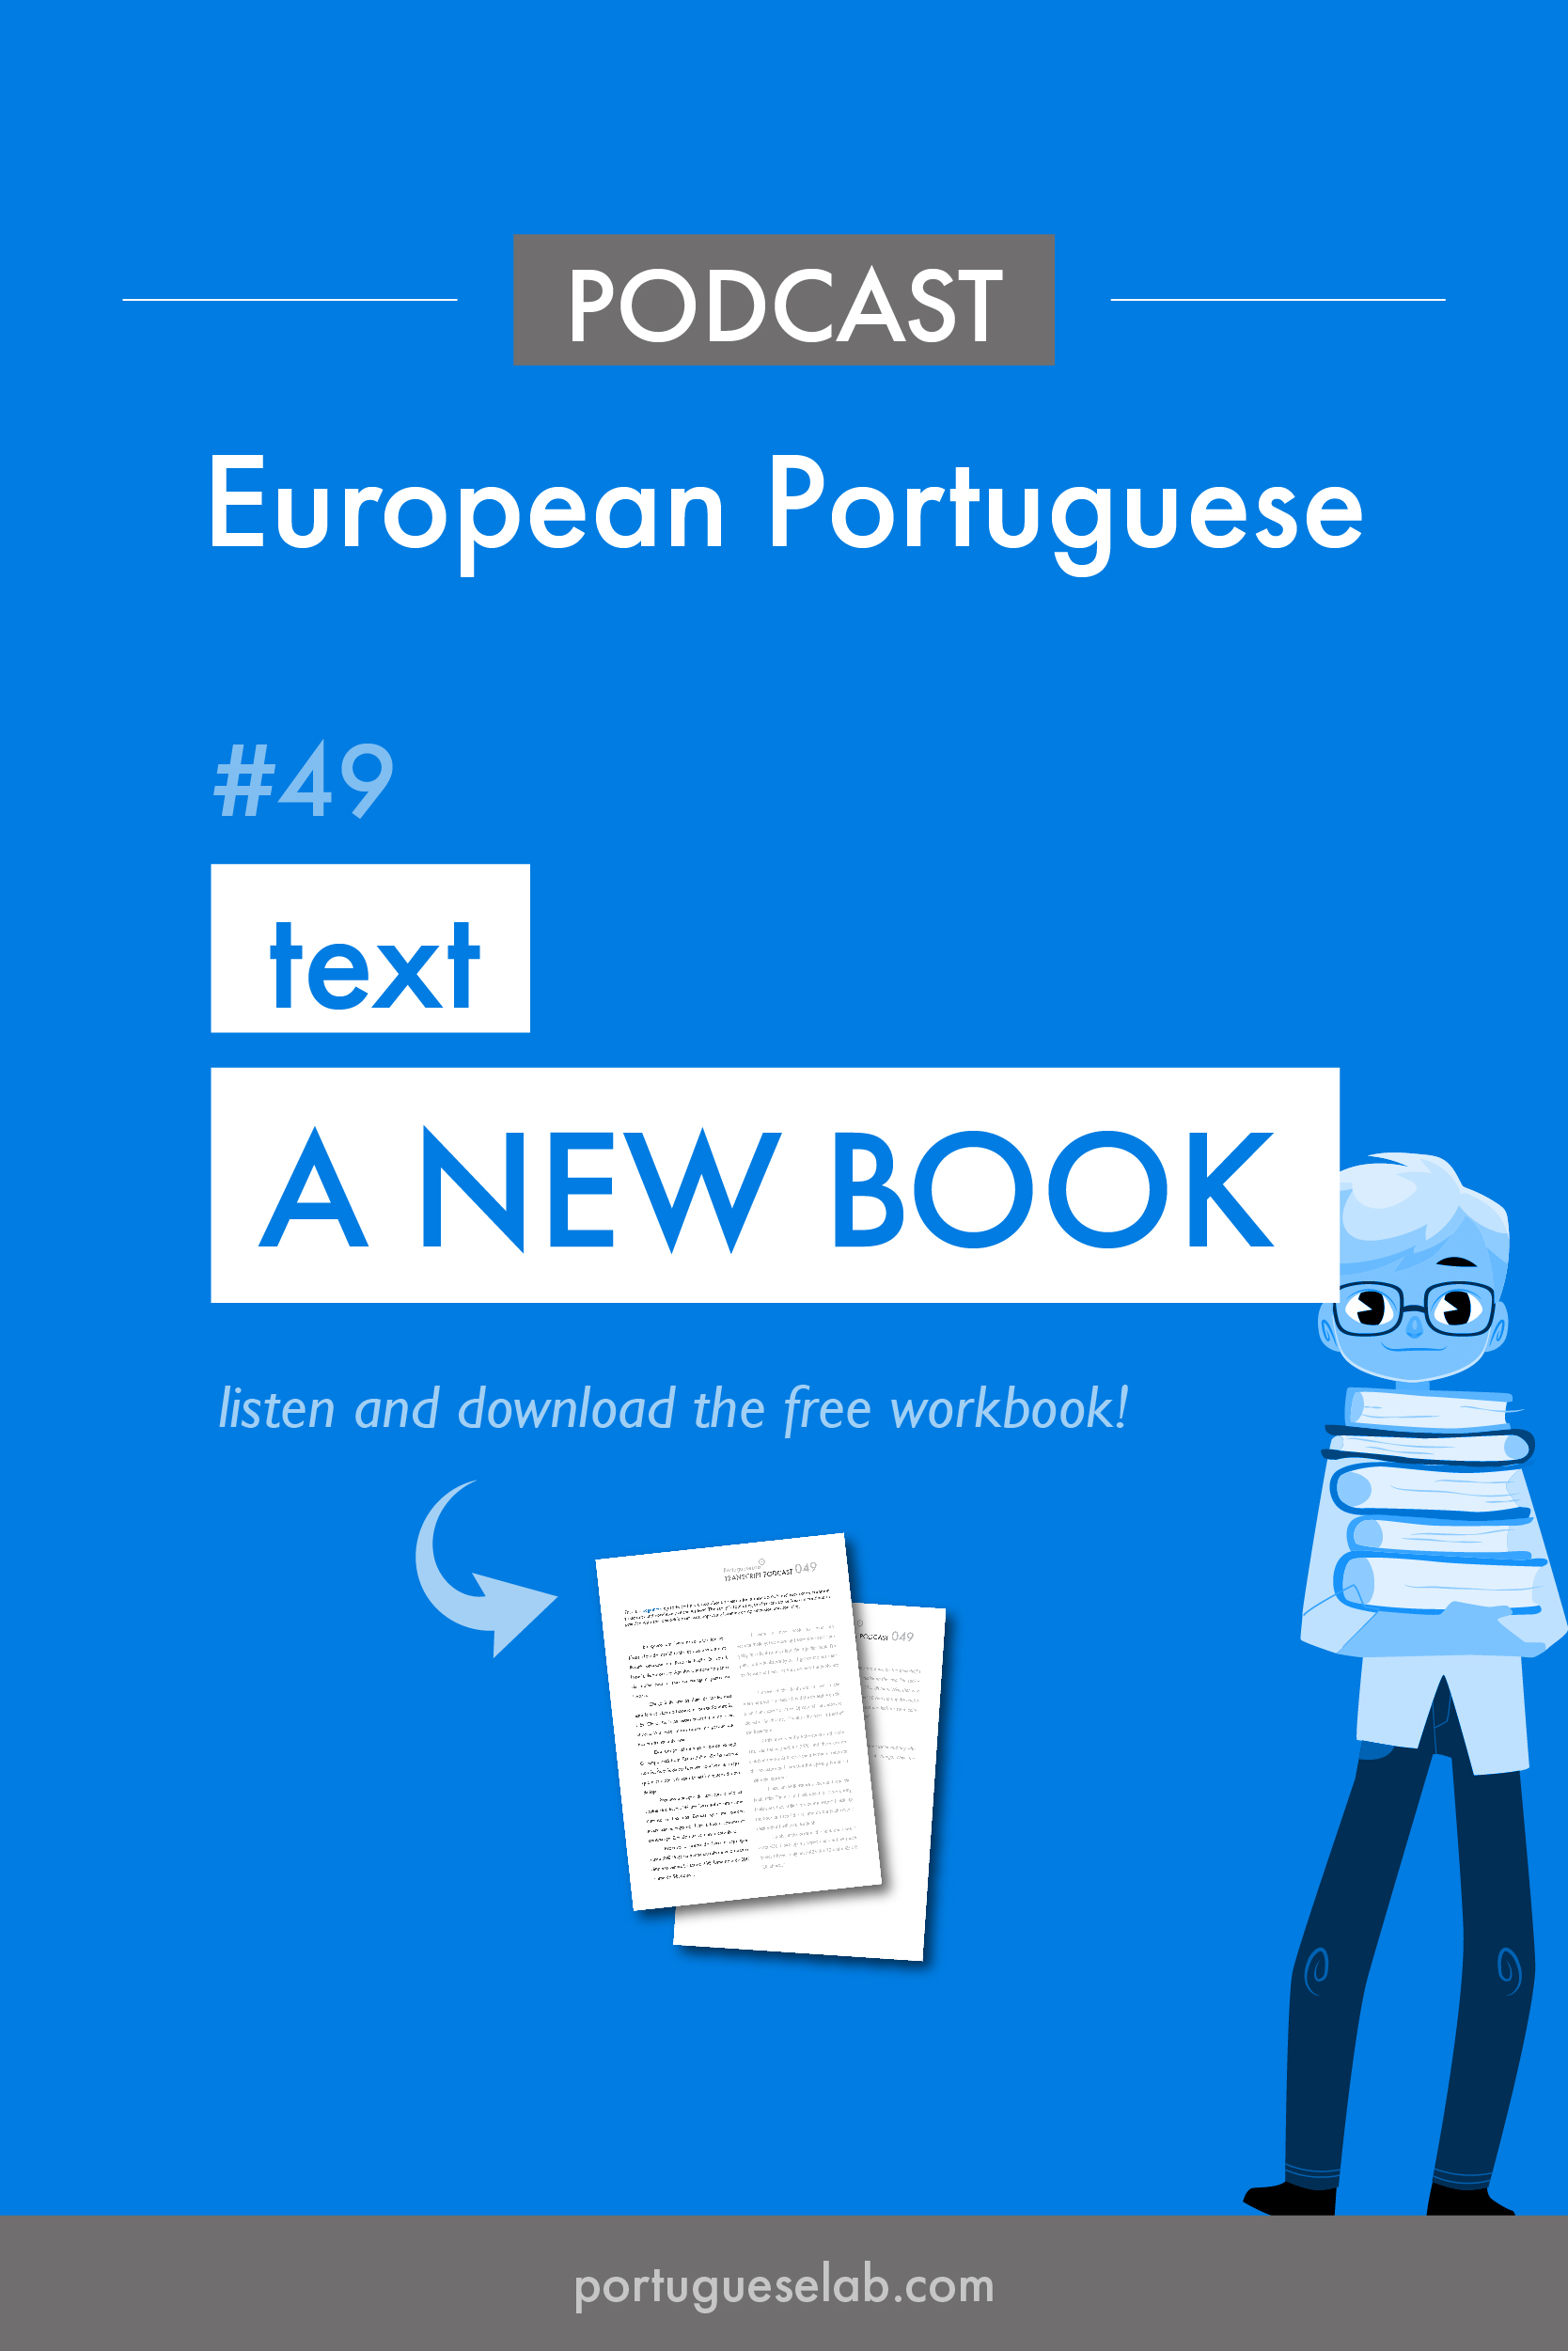 Portuguese Lab Podcast - European Portuguese - 49 - Story - A new book.jpg